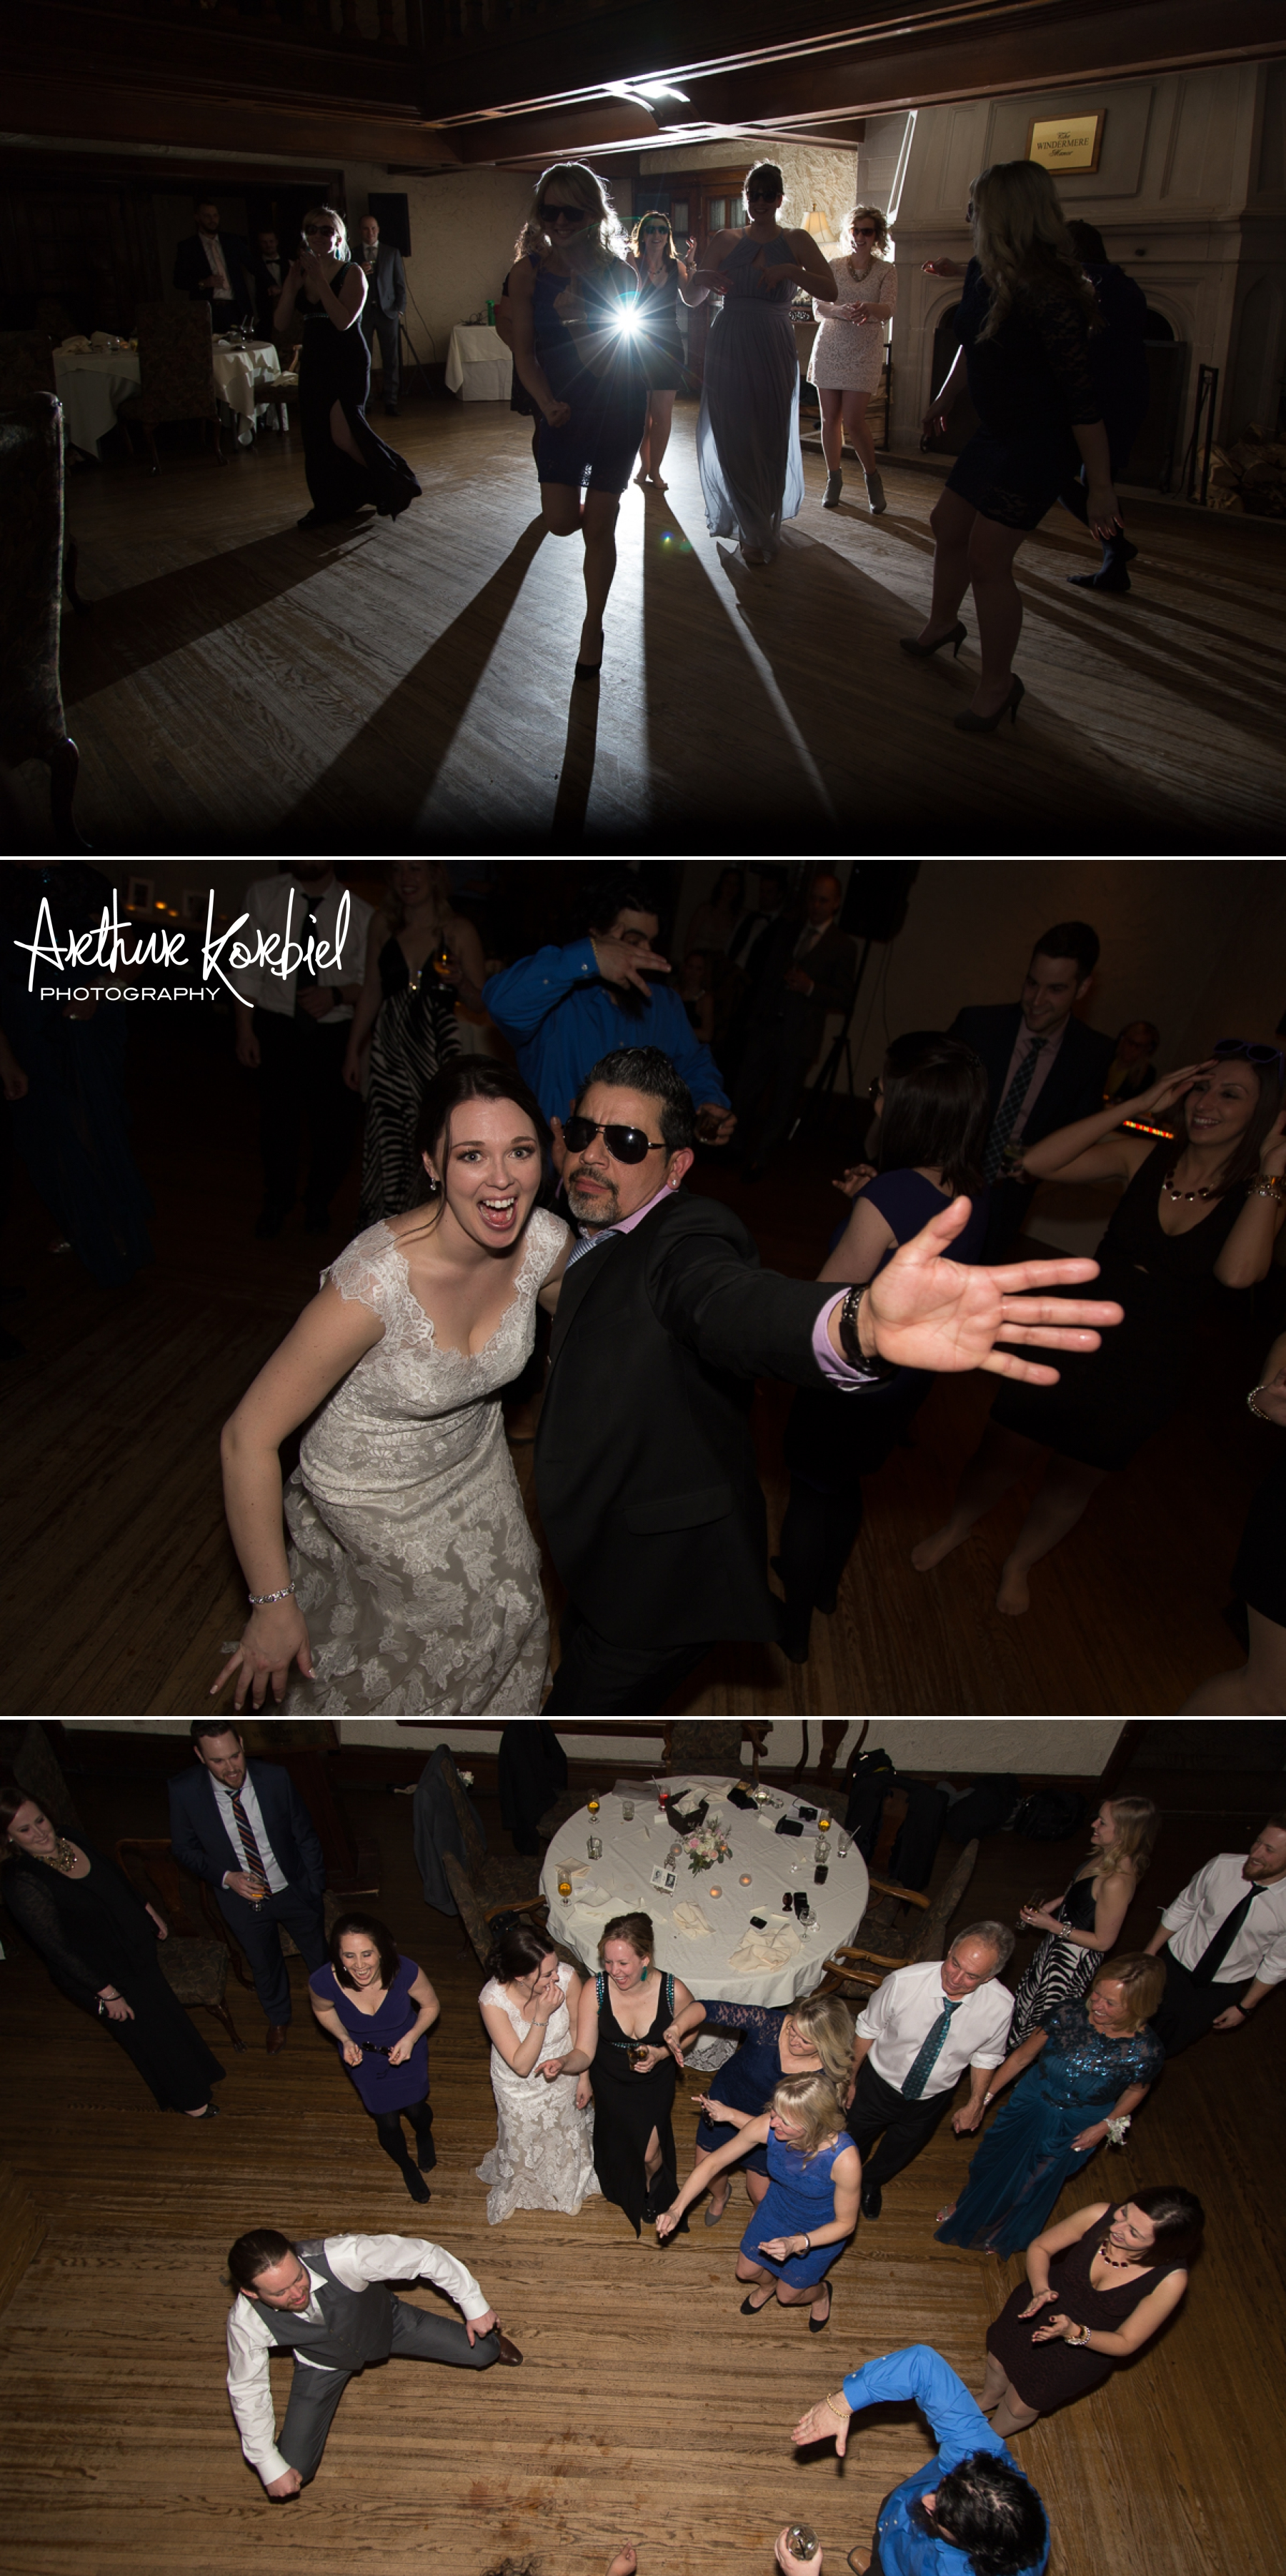 Arthur Korbiel Photography - London Wedding Photographer - Windermere Manor _010.jpg